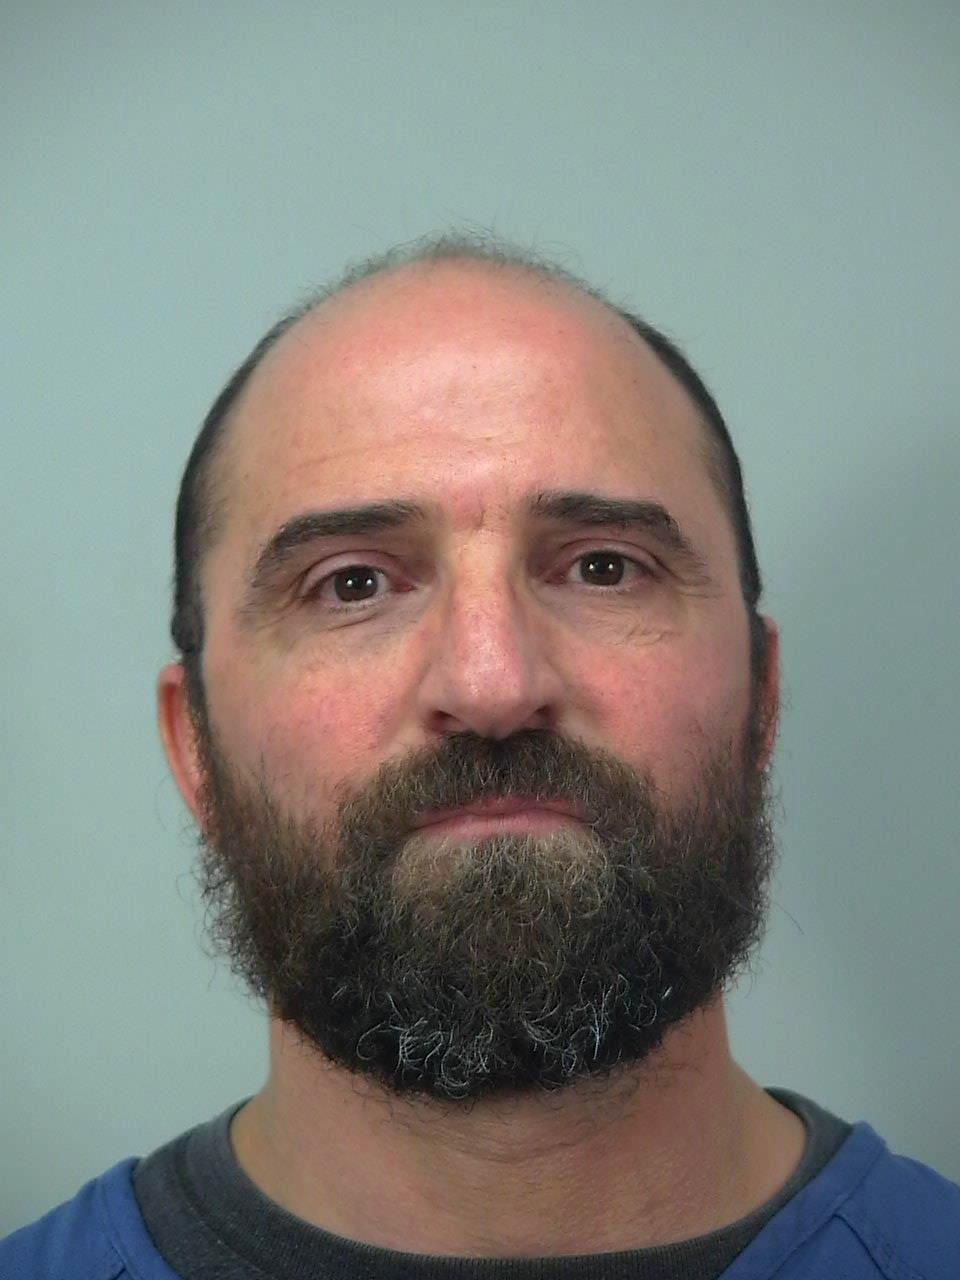 Khaled Shabani is shown in a Dec. 22, 2017 photo provided by the Dane County (Wis.) Sheriff's Office. Madison police say they arrested Shabani accused of snipping a 22-year-old customer's ear on Friday. Police spokesman Joel DeSpain says officers arrested 46-year-old Shabani on suspicion of disorderly conduct. Shabani pleaded not guilty to disorderly conduct Wednesday. DeSpain says Shabani told officers it was an accident. (Dane County (Wis.) Sheriff's Office via AP)